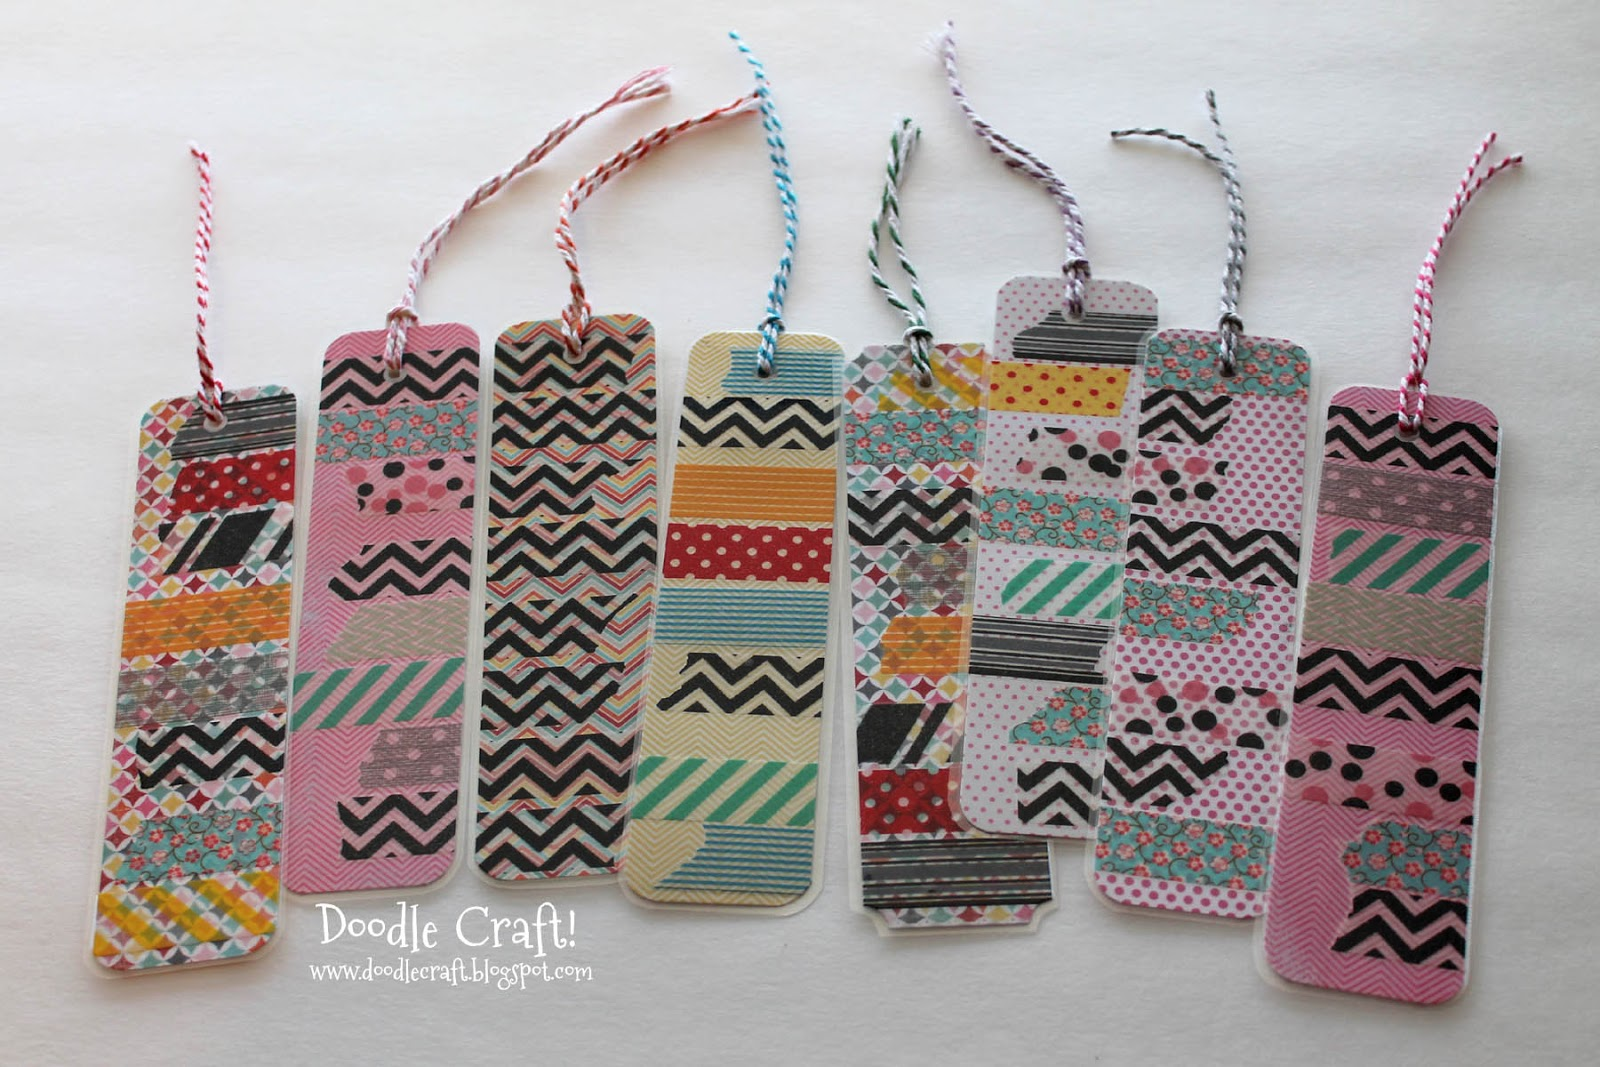 Doodlecraft washi tape bookmarks for Duct tape bookmark ideas